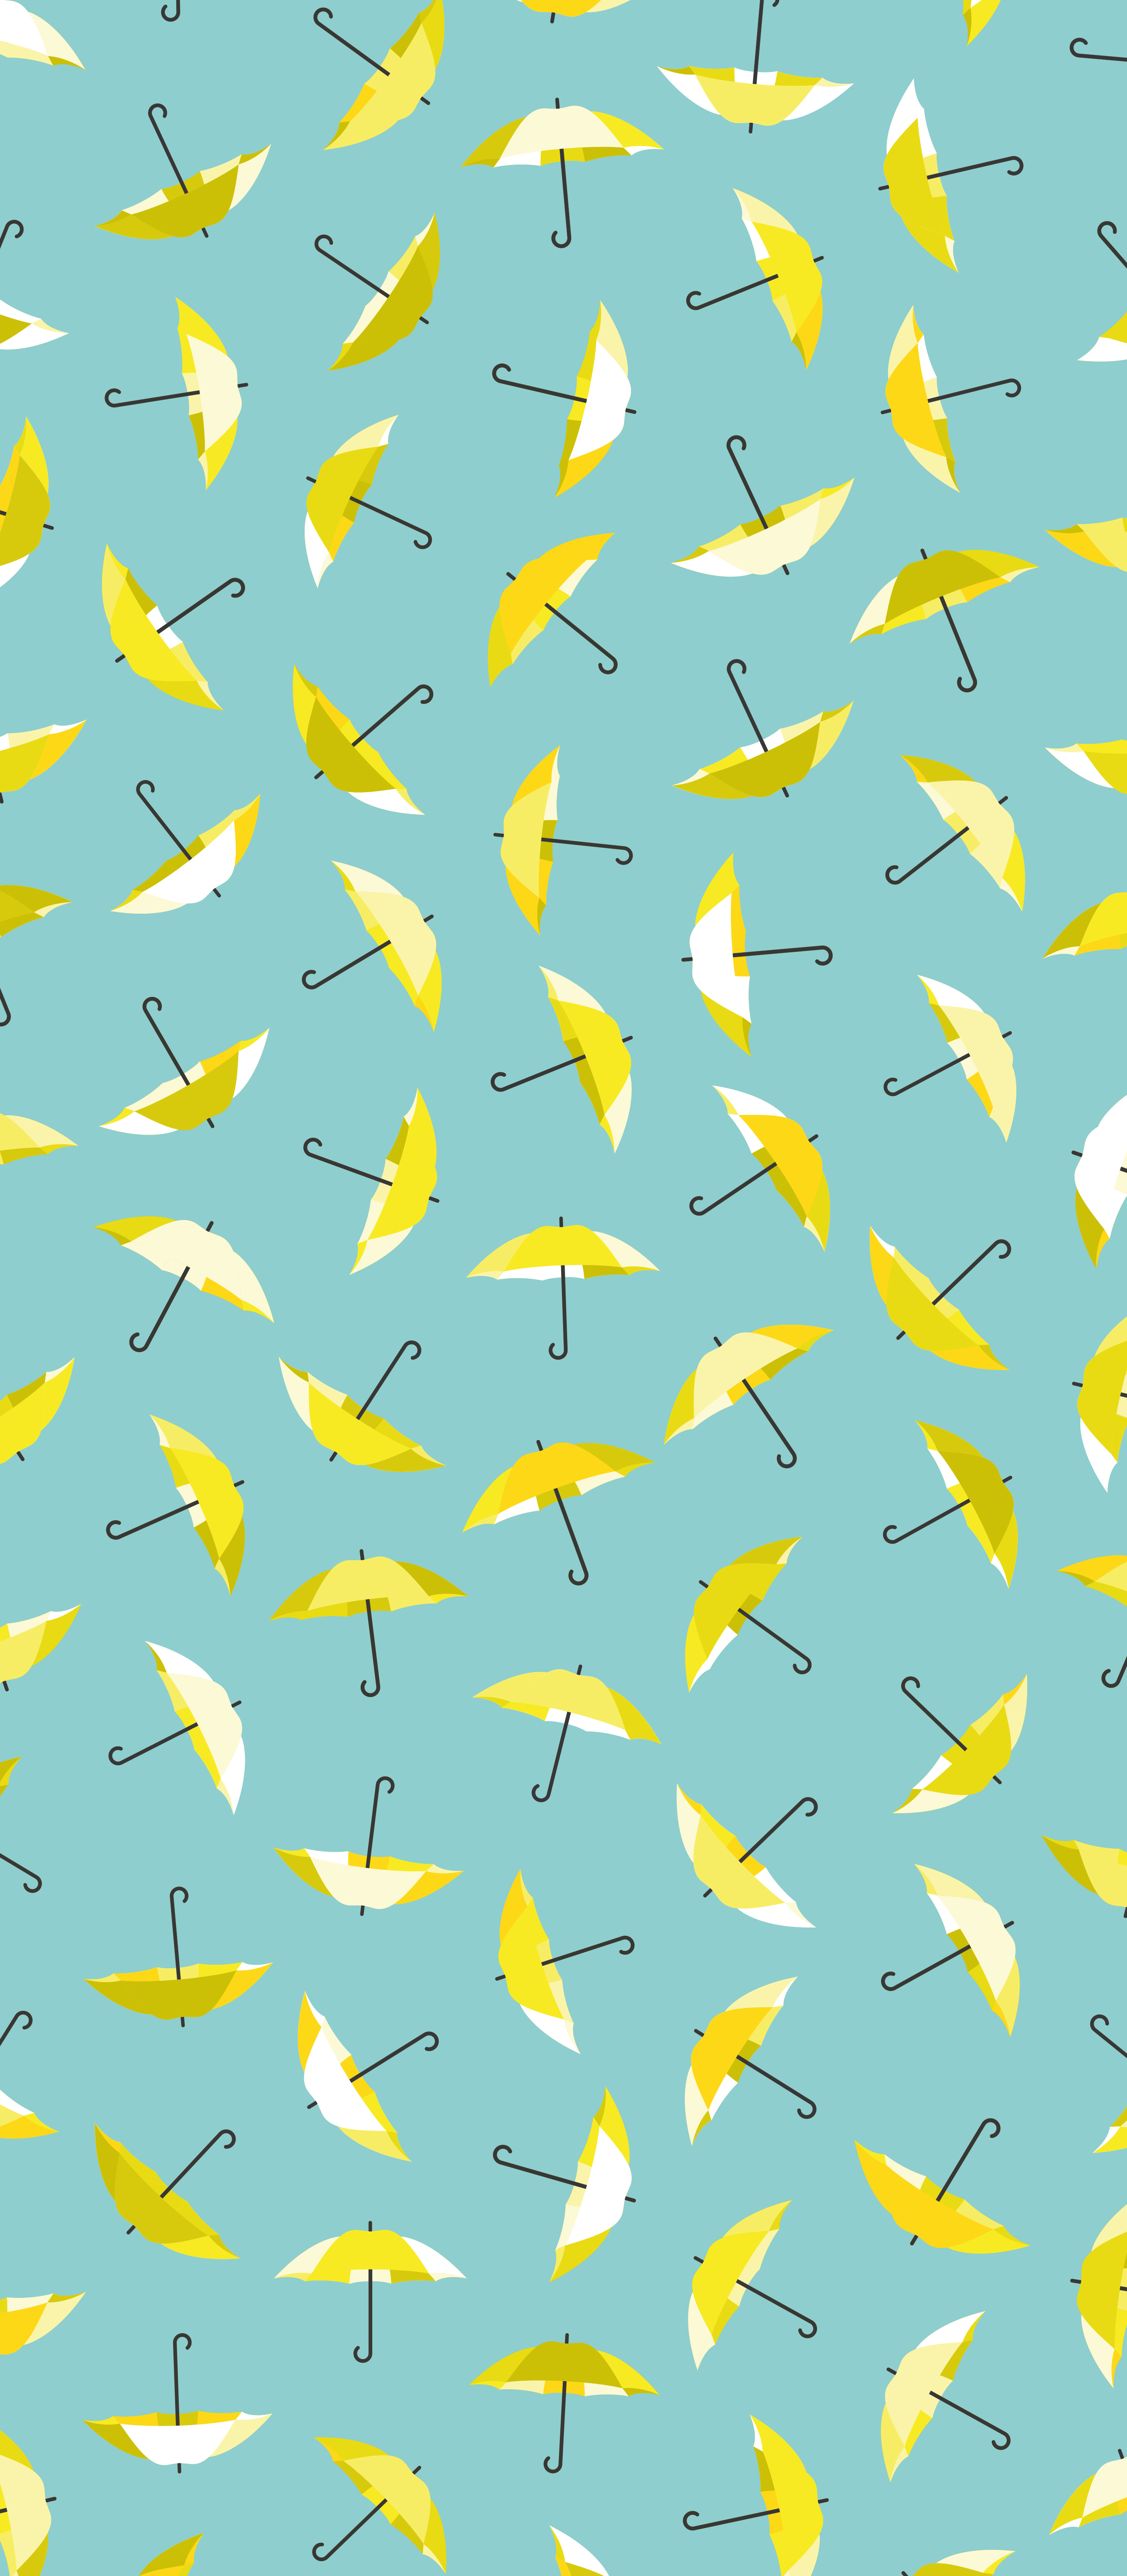 Yellow Umbrella Repeating Pattern Design Inspired By How I Met